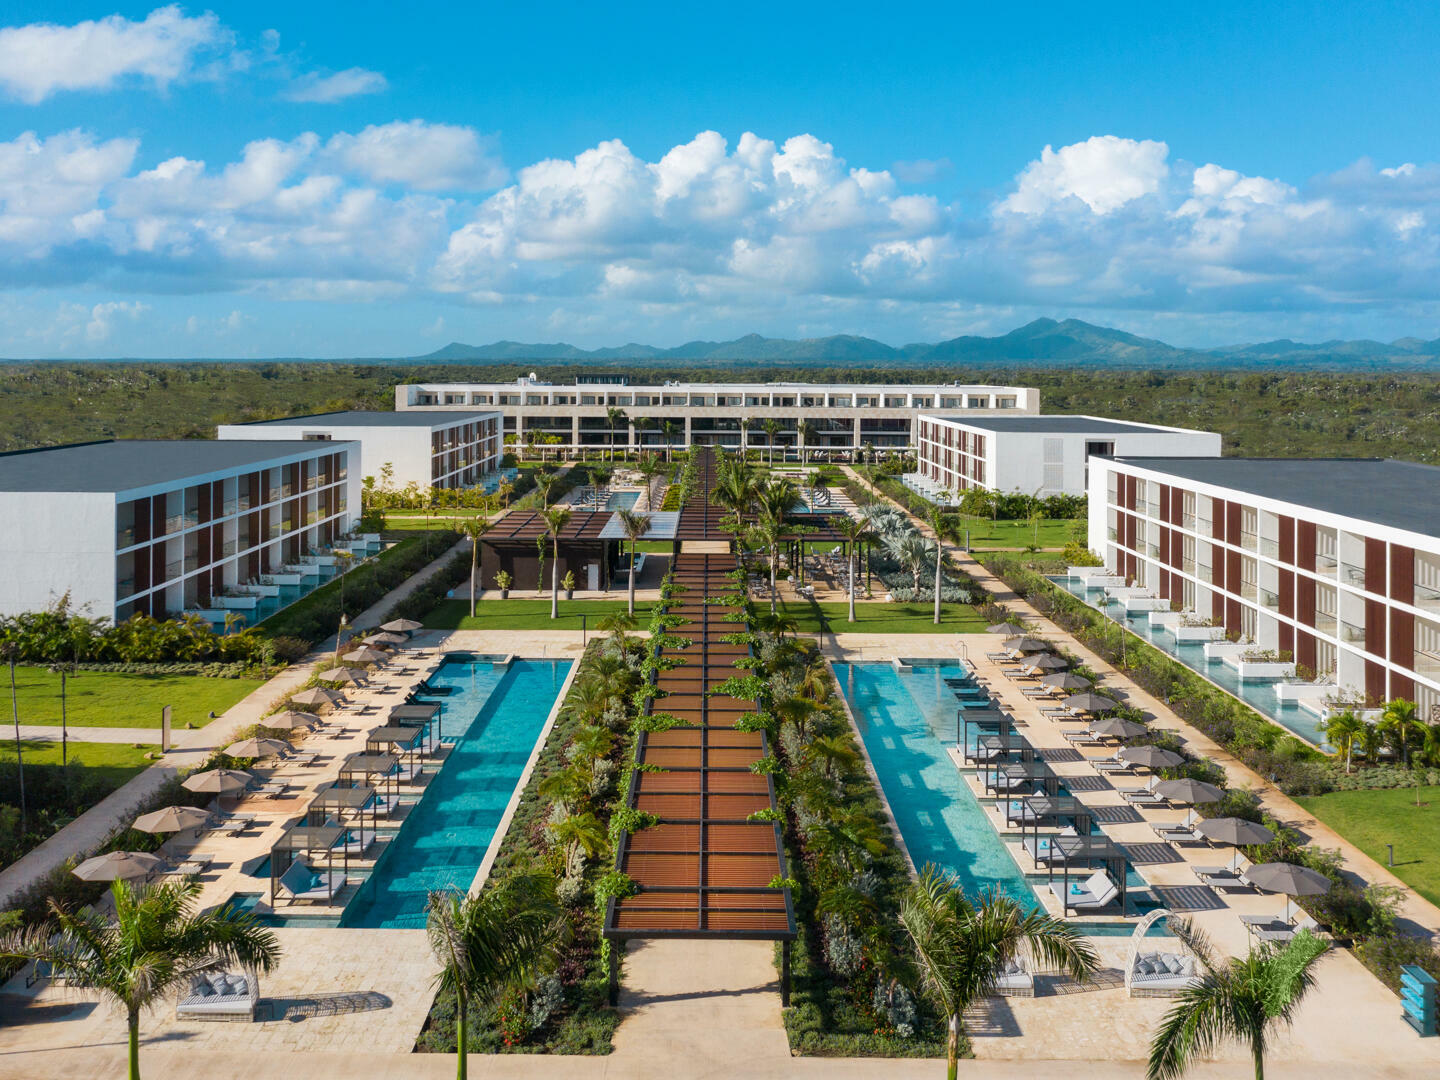 Exterior view a hotel with pool in the Punta Cana city